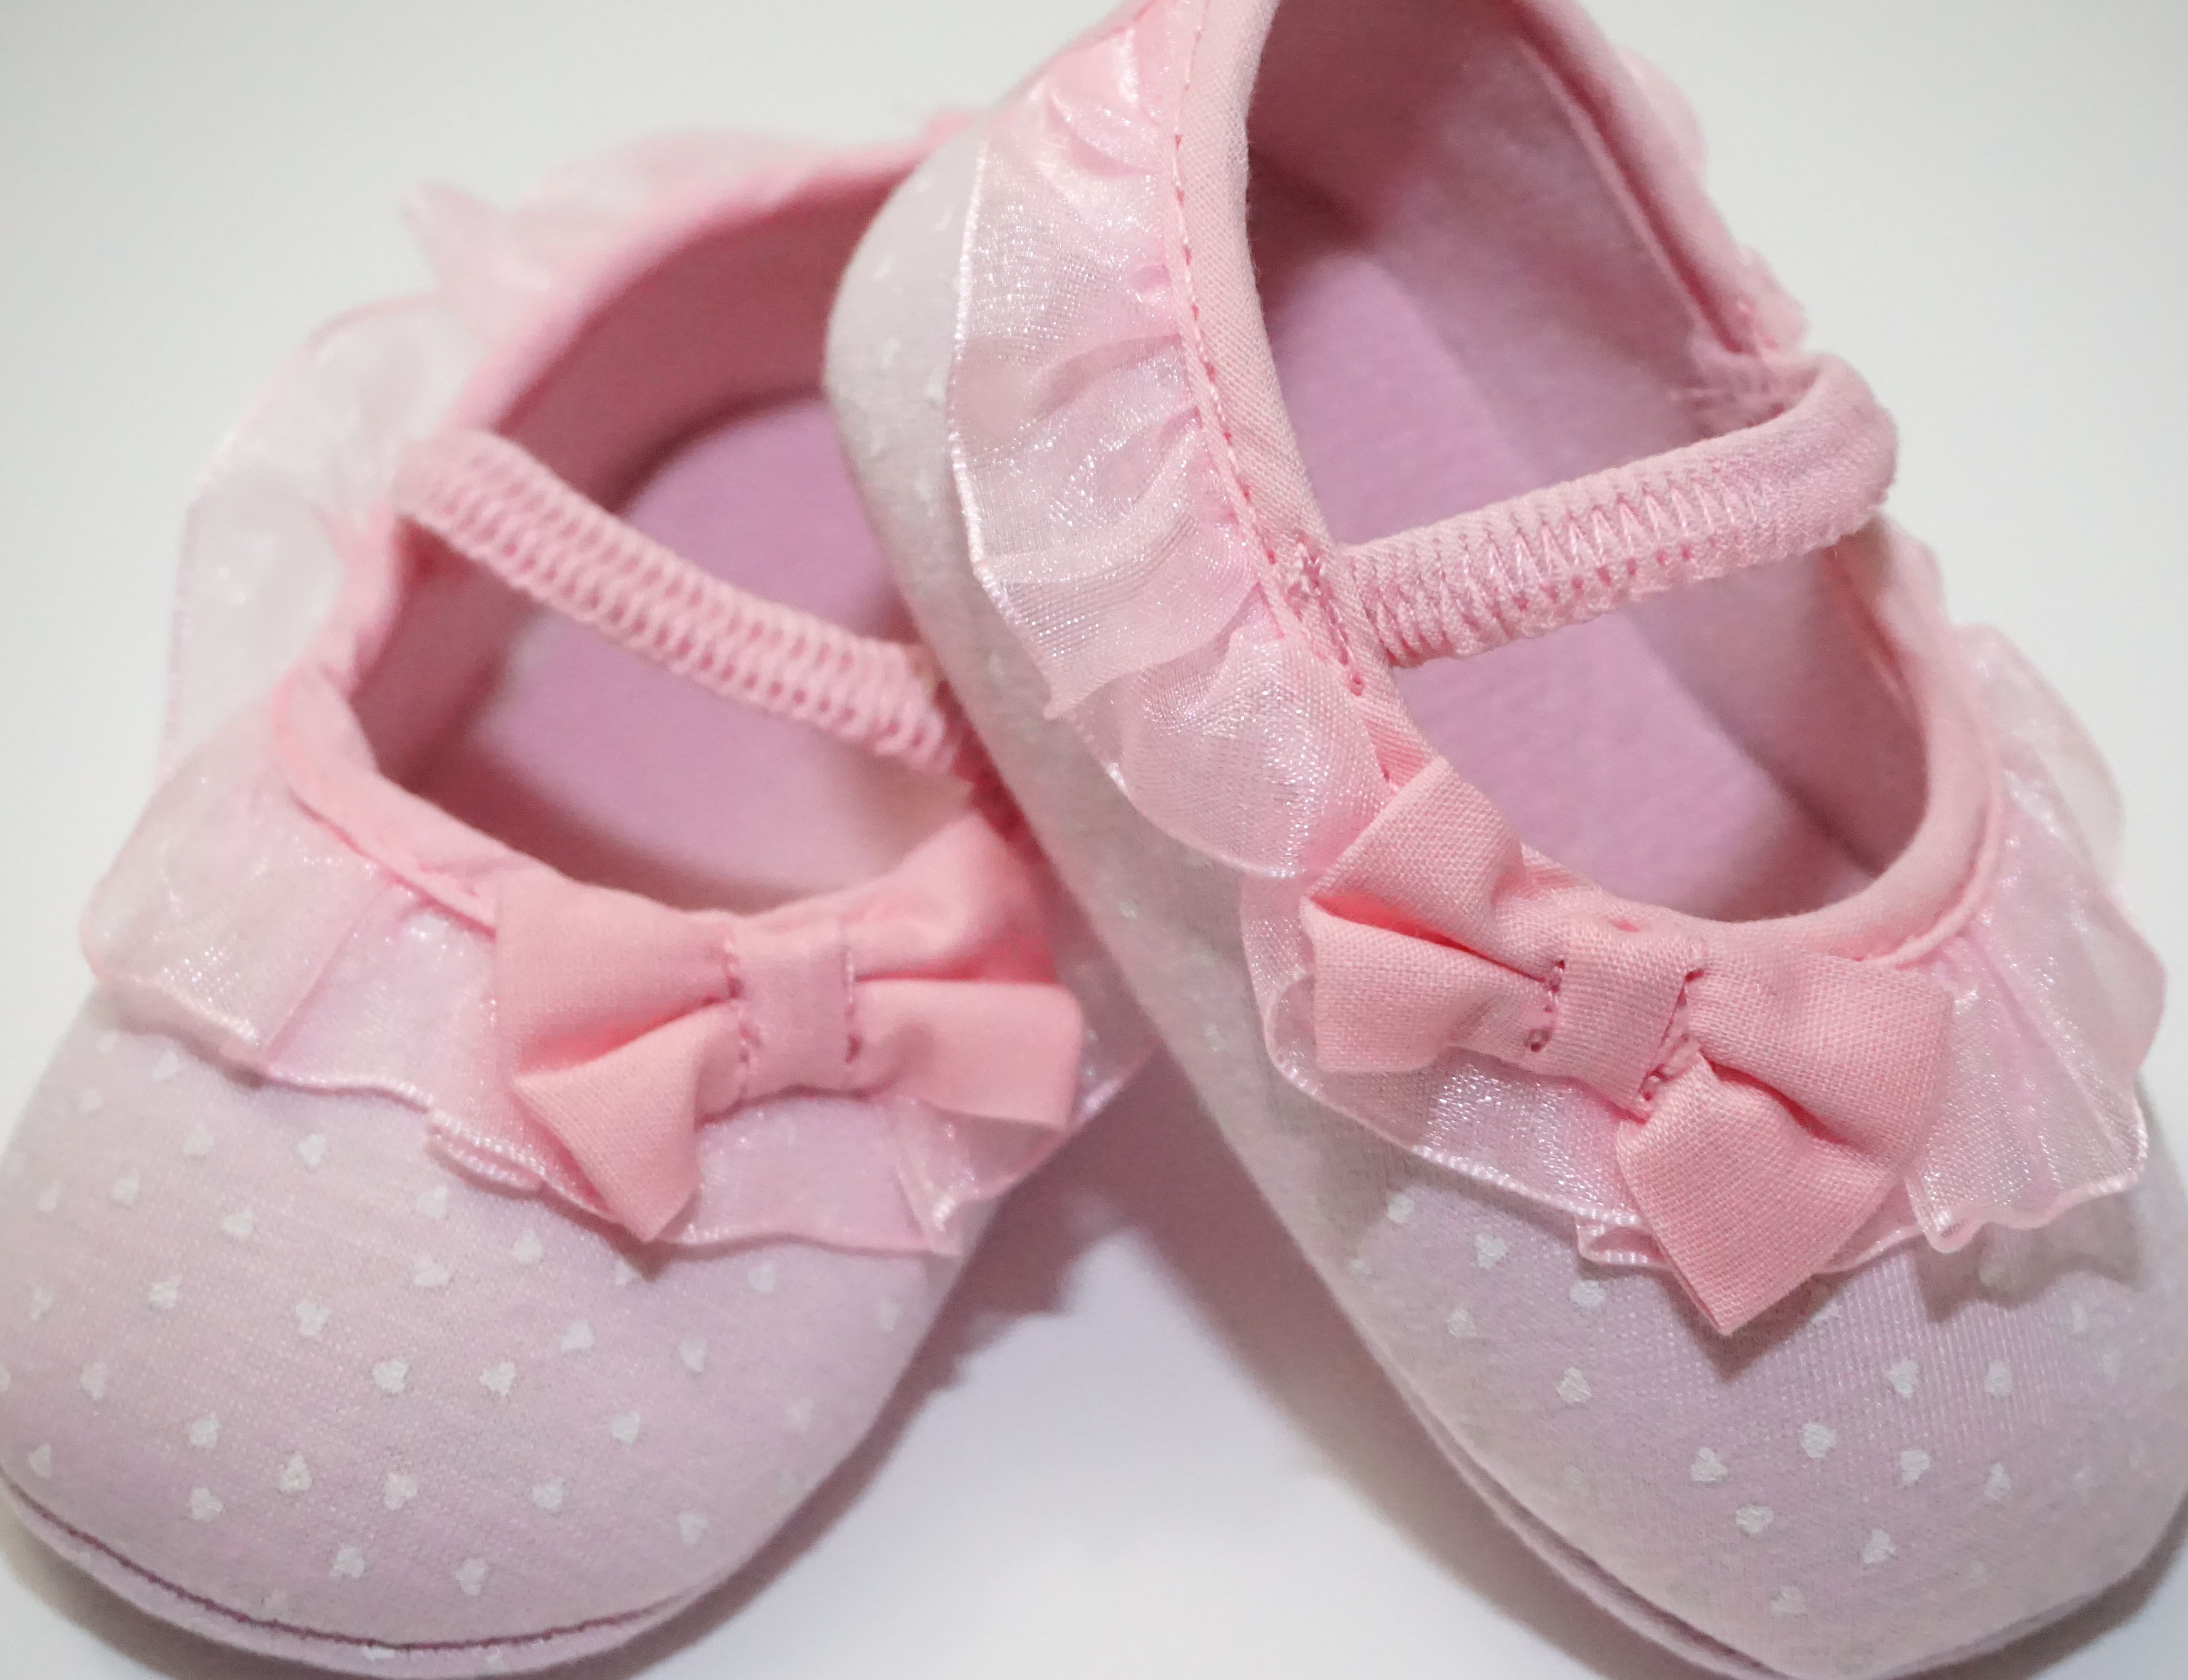 Look at this cute ballerina shoes You know of anyone or you maybe